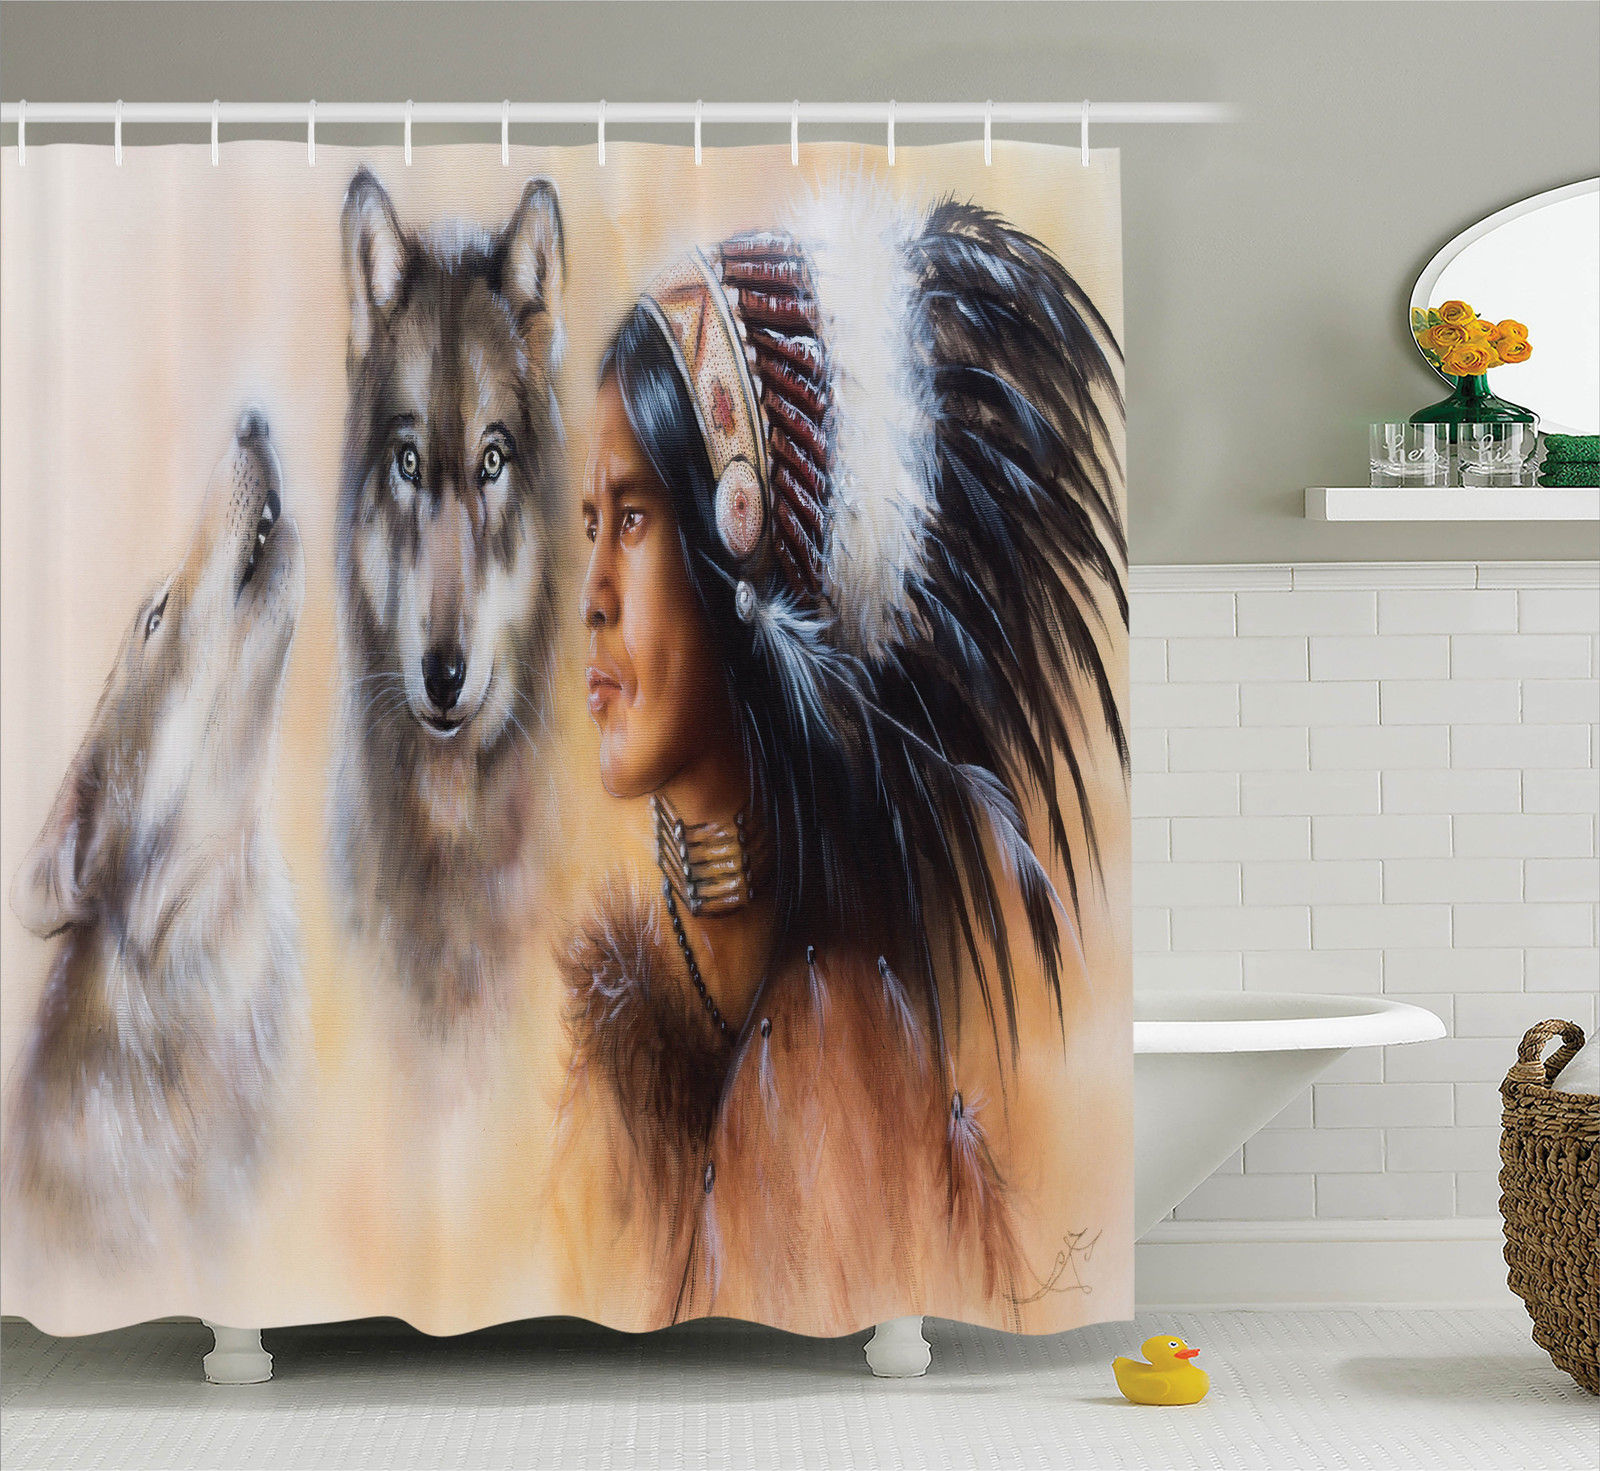 Native American Decor  Blur Mystic Painting Of Young Indi...